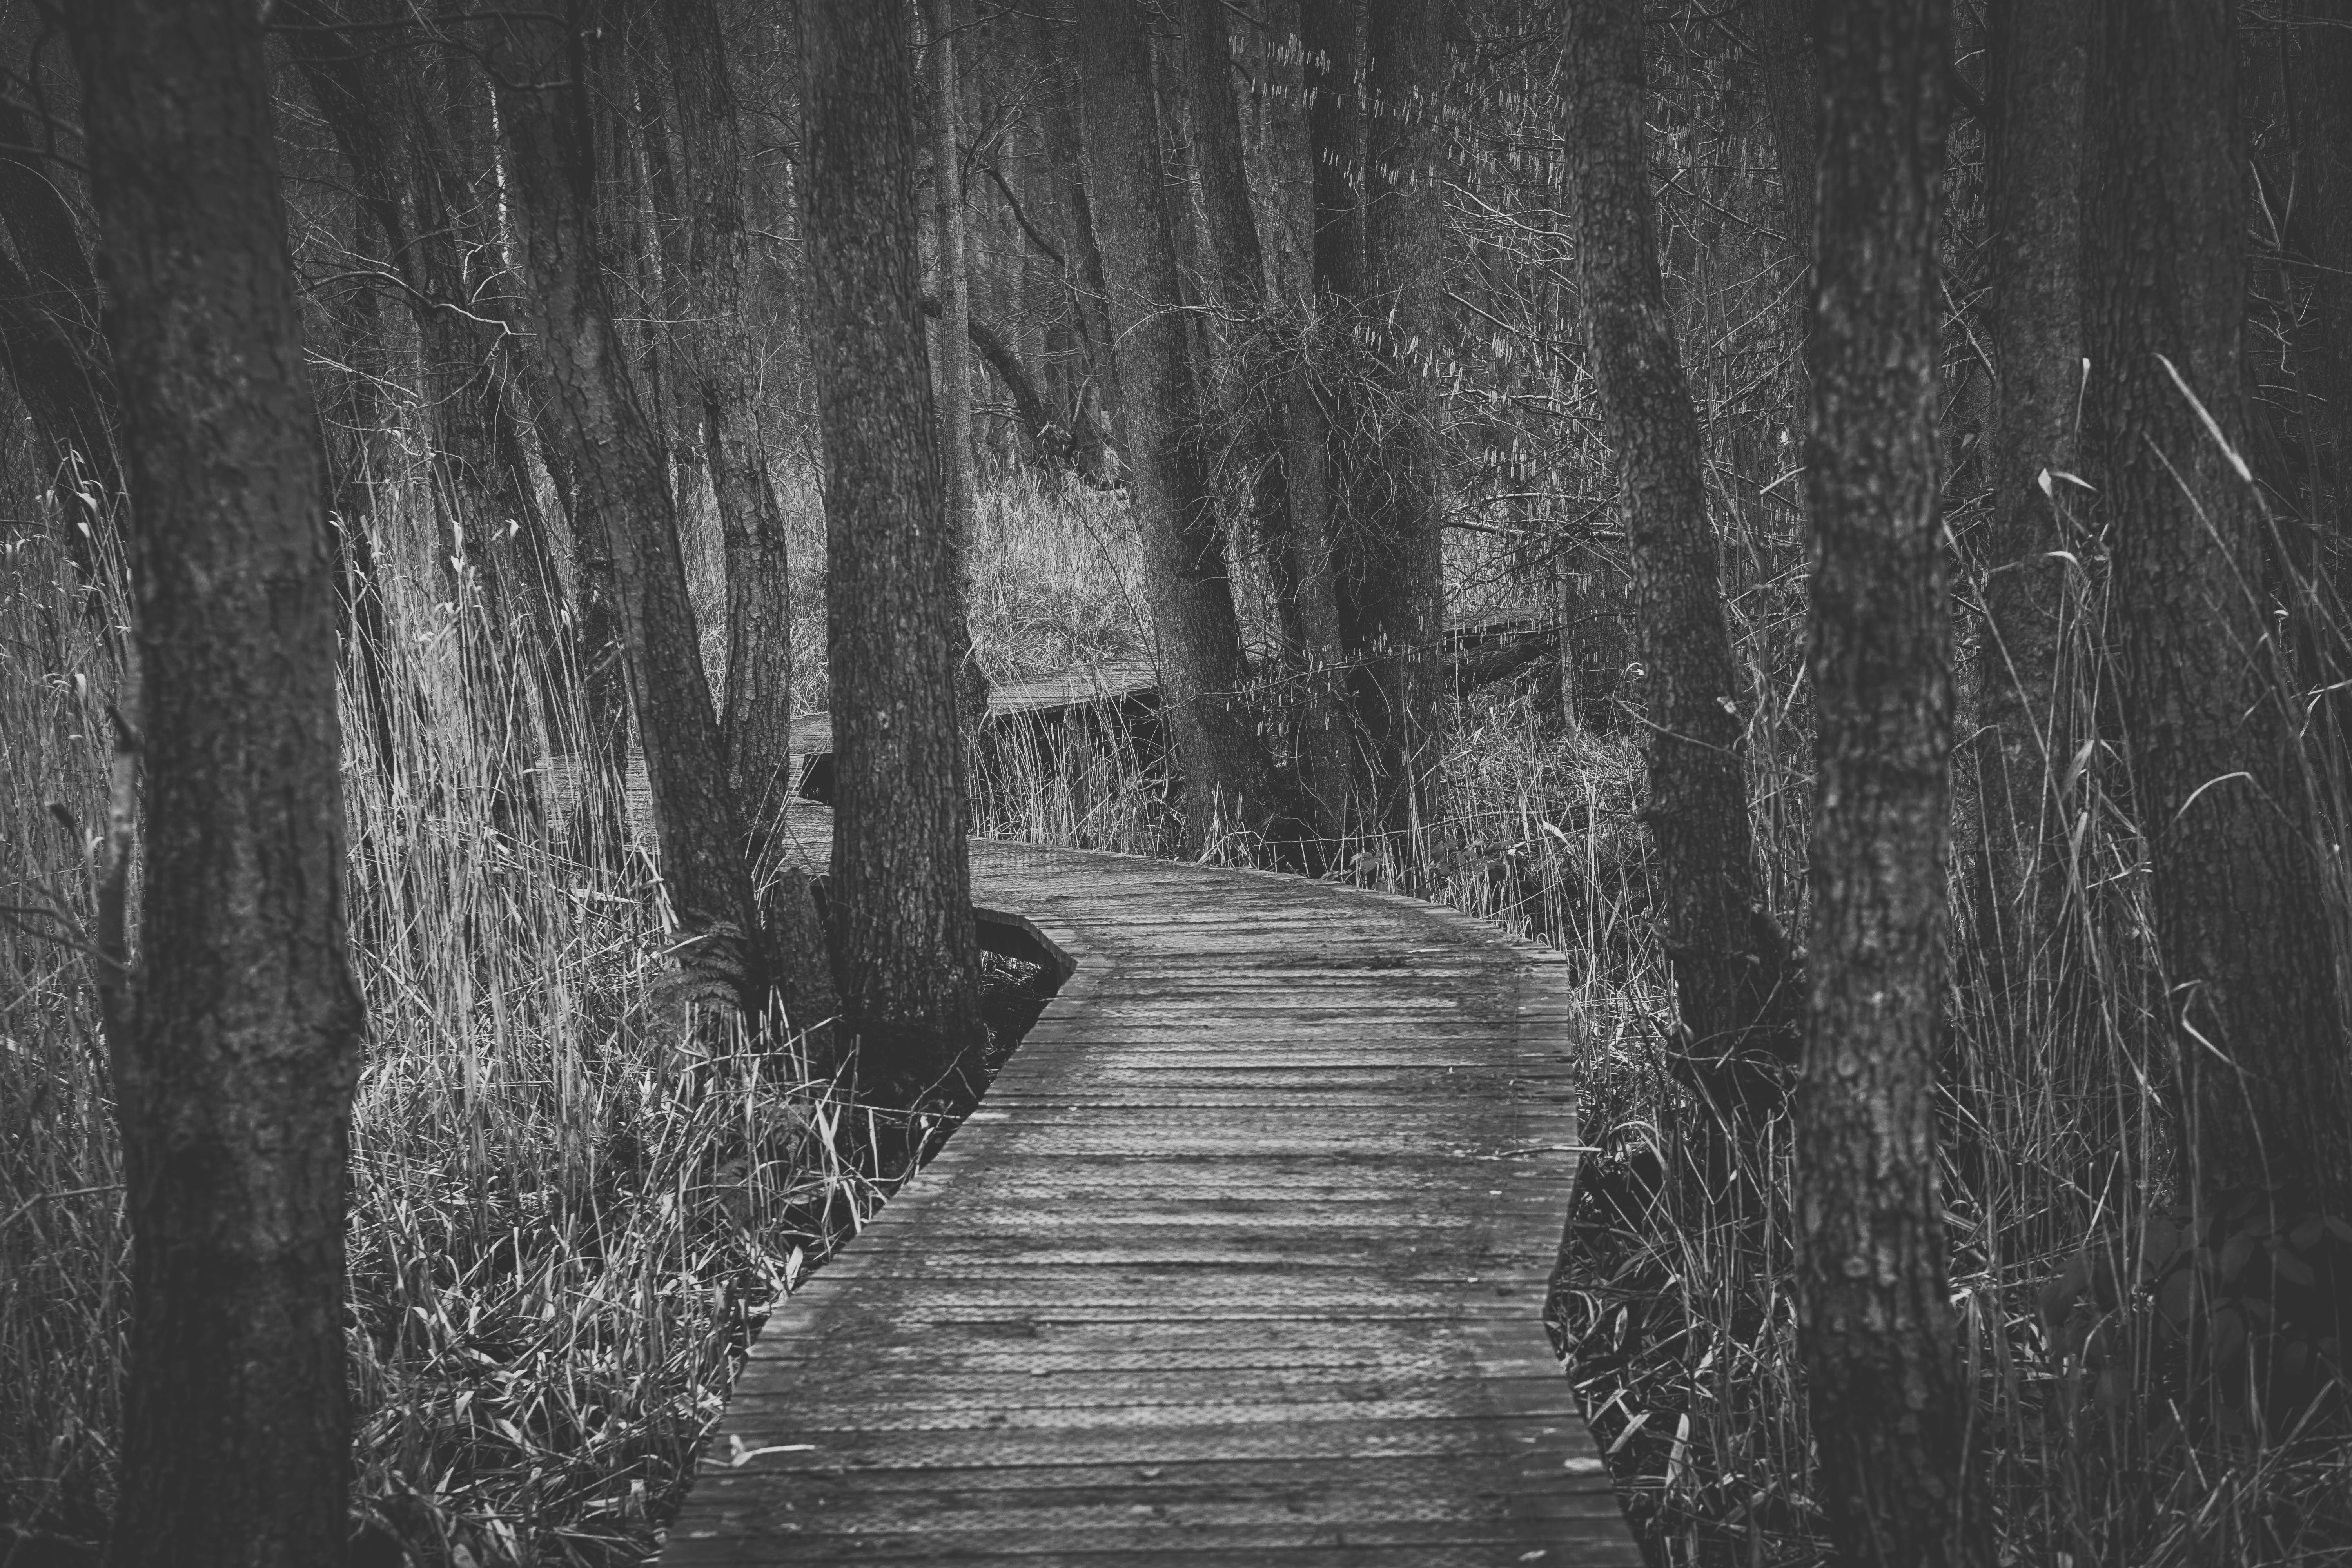 Boardwalk Amidst Trees in Forest